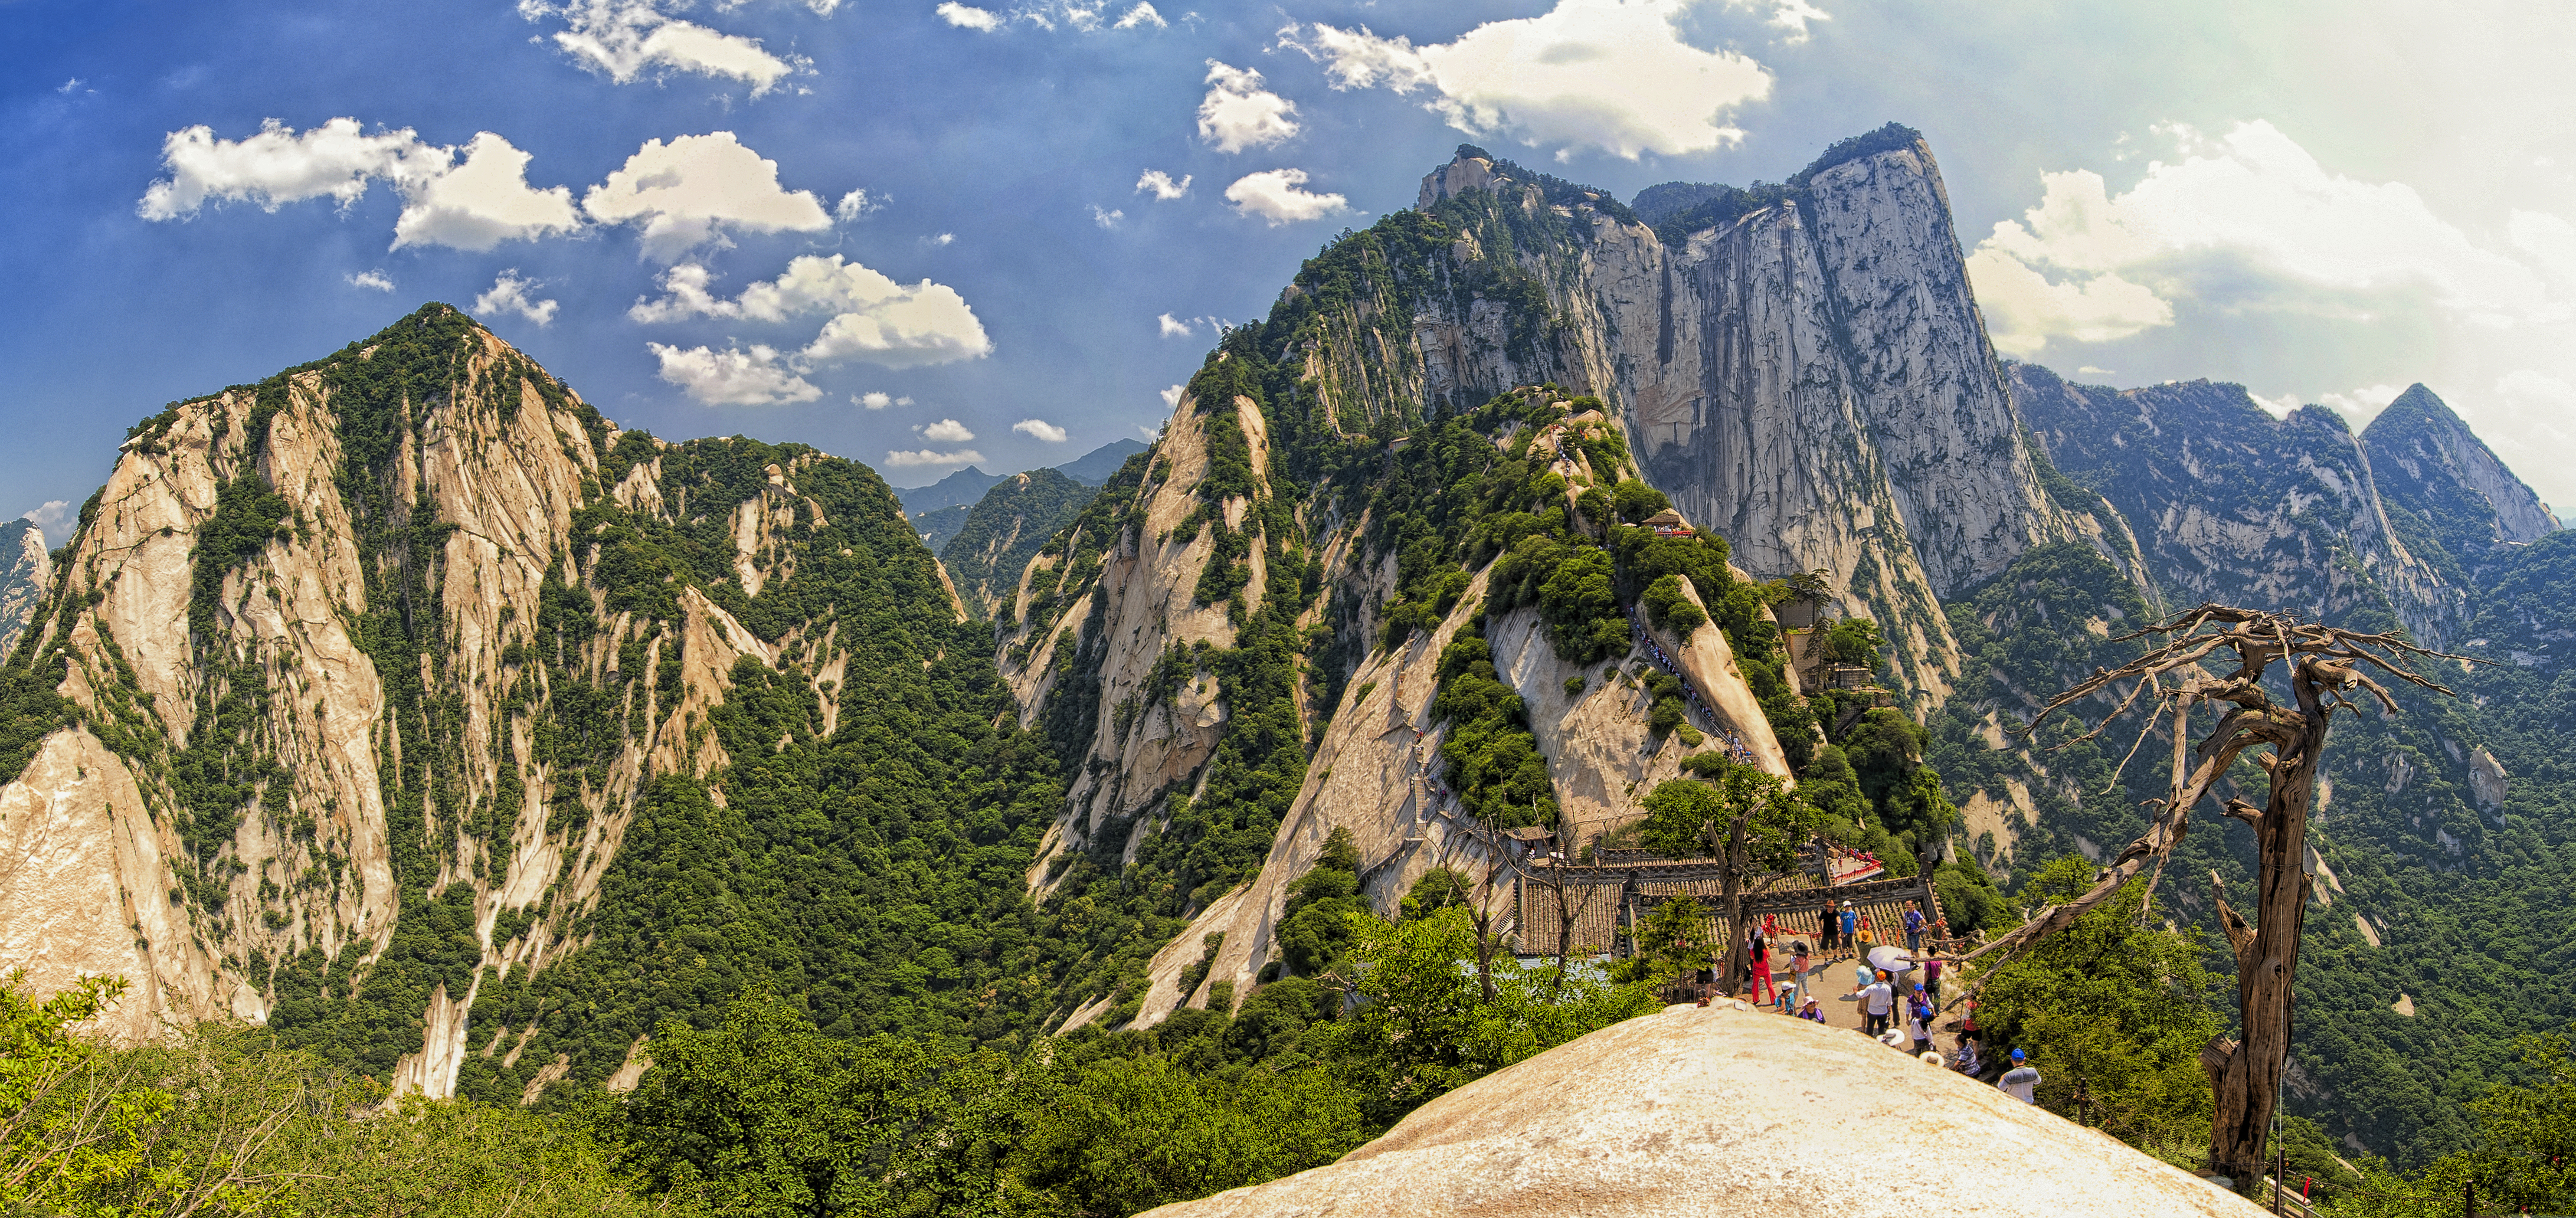 Shiyan China  city photo : 1 mount hua shan china 2011 Wikimedia Commons